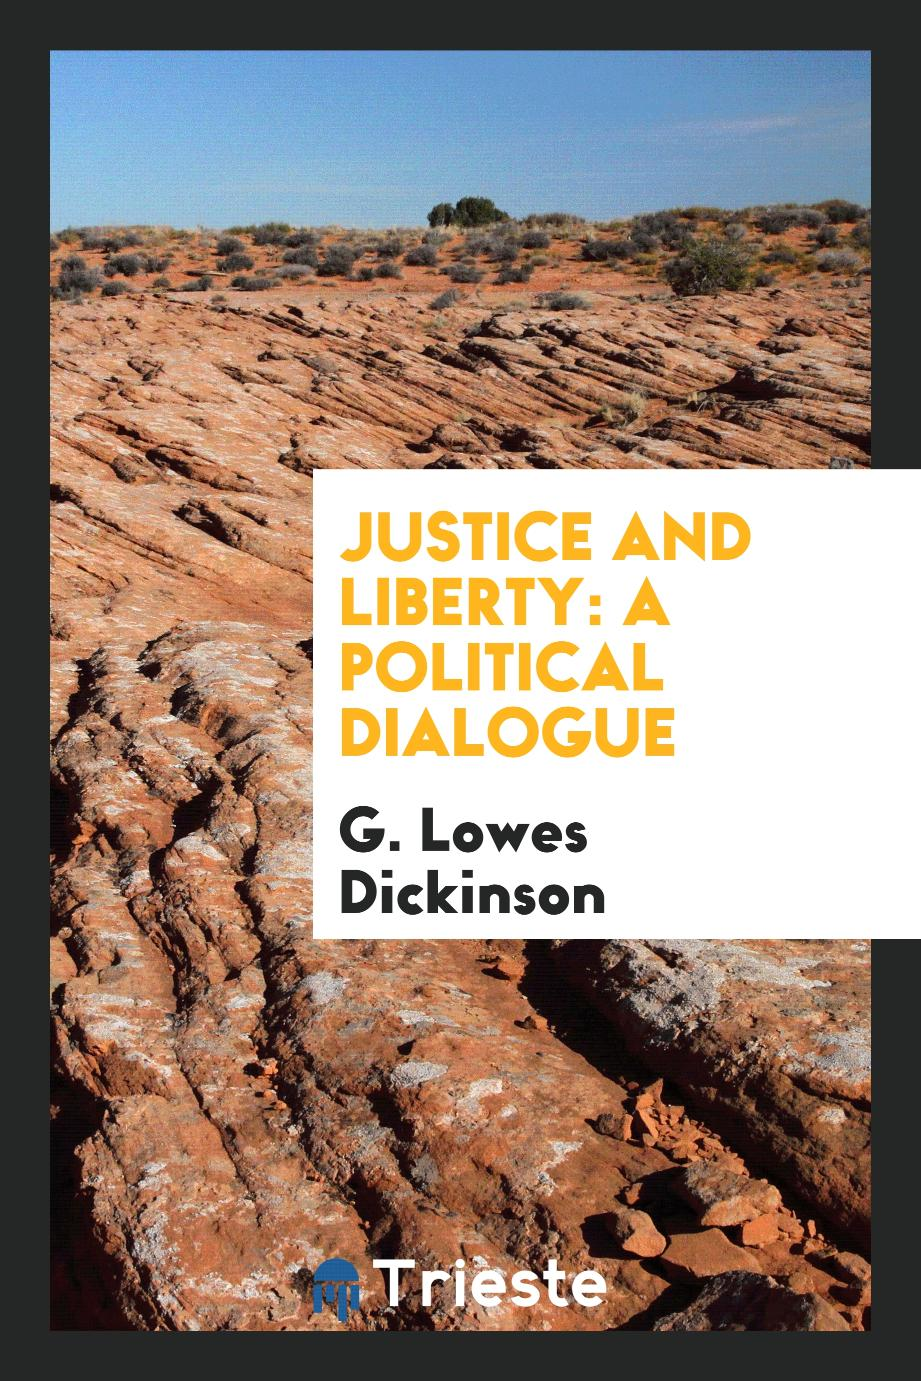 Justice and liberty: a political dialogue